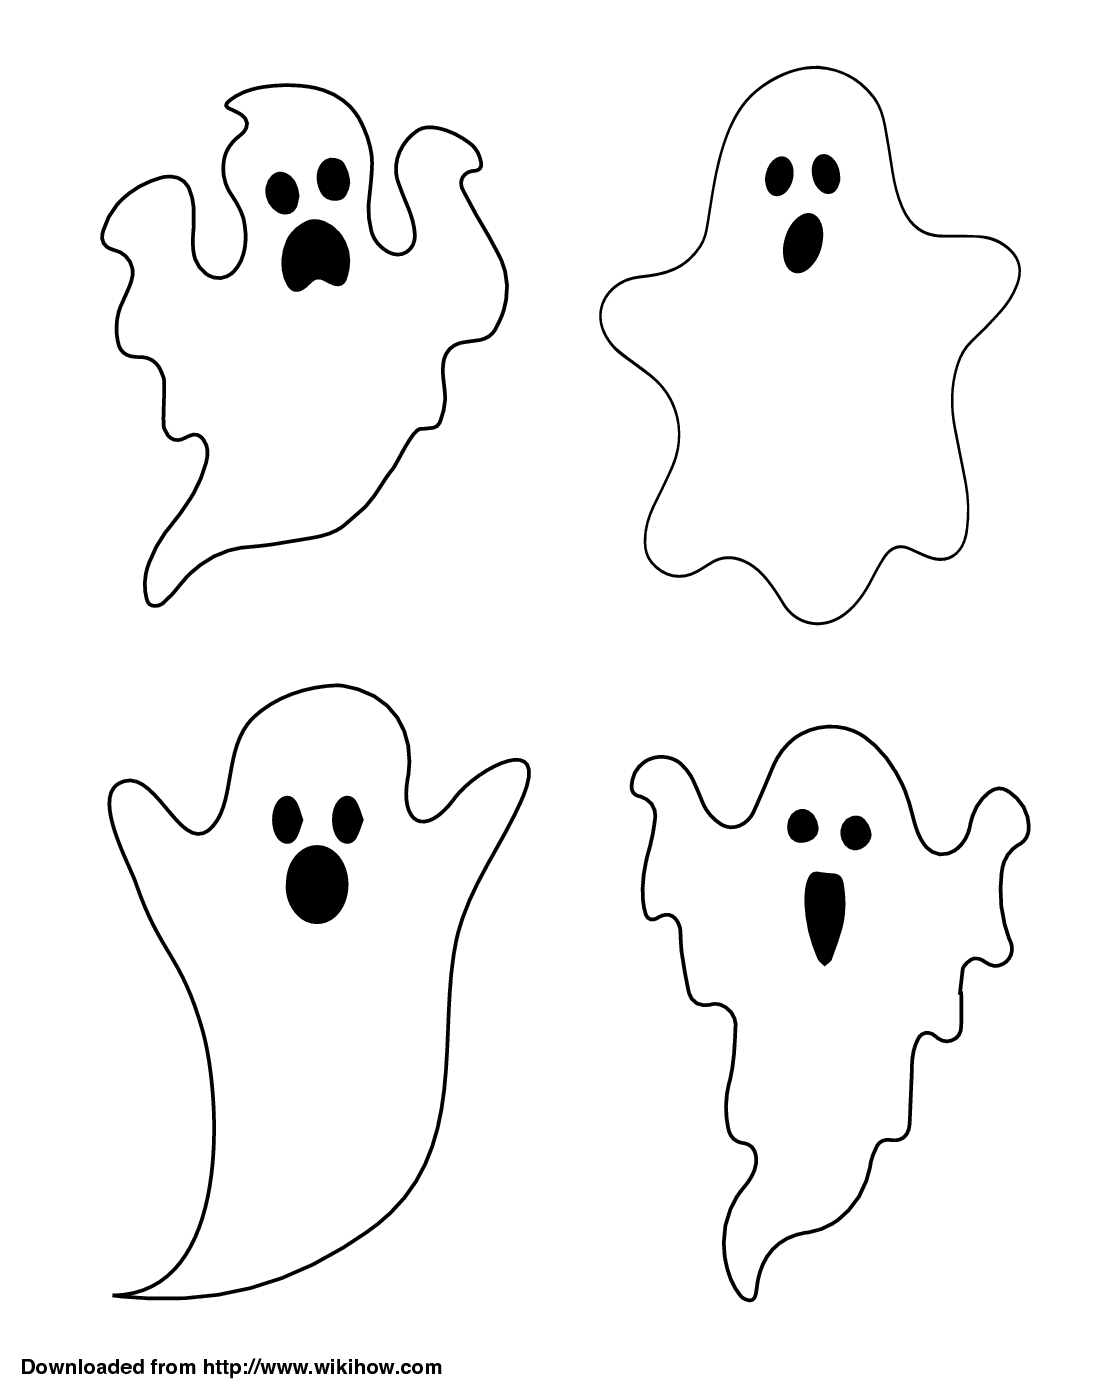 3 Ways To Draw A Ghost Wikihow Bricolage Halloween Halloween Templates Halloween Crafts For Kids